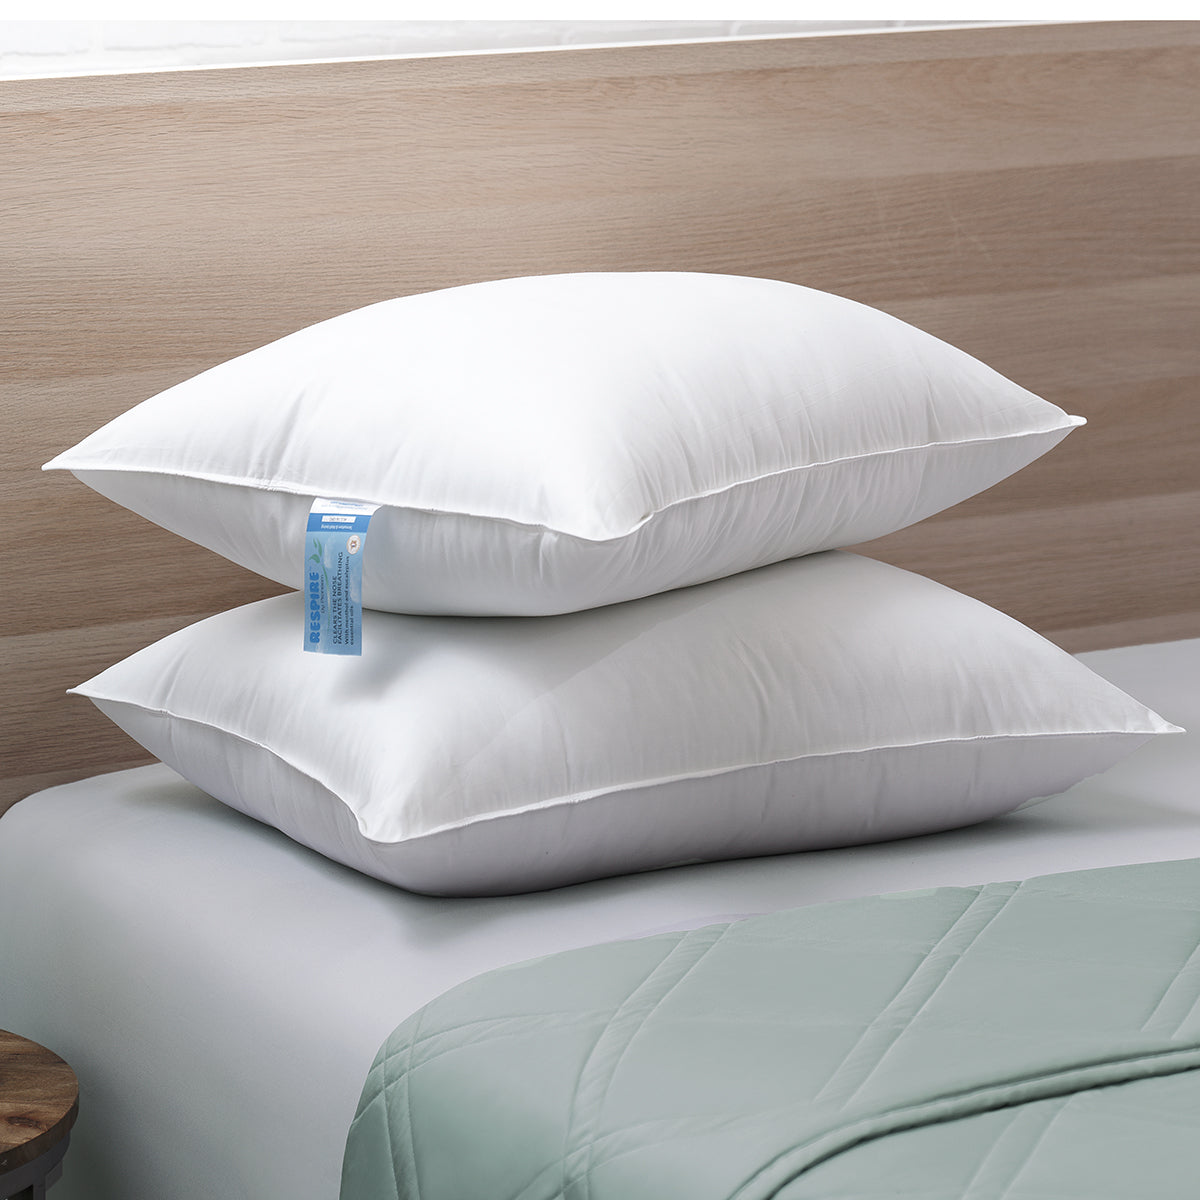 Respire Breathe Fresh Pillow Two Pack